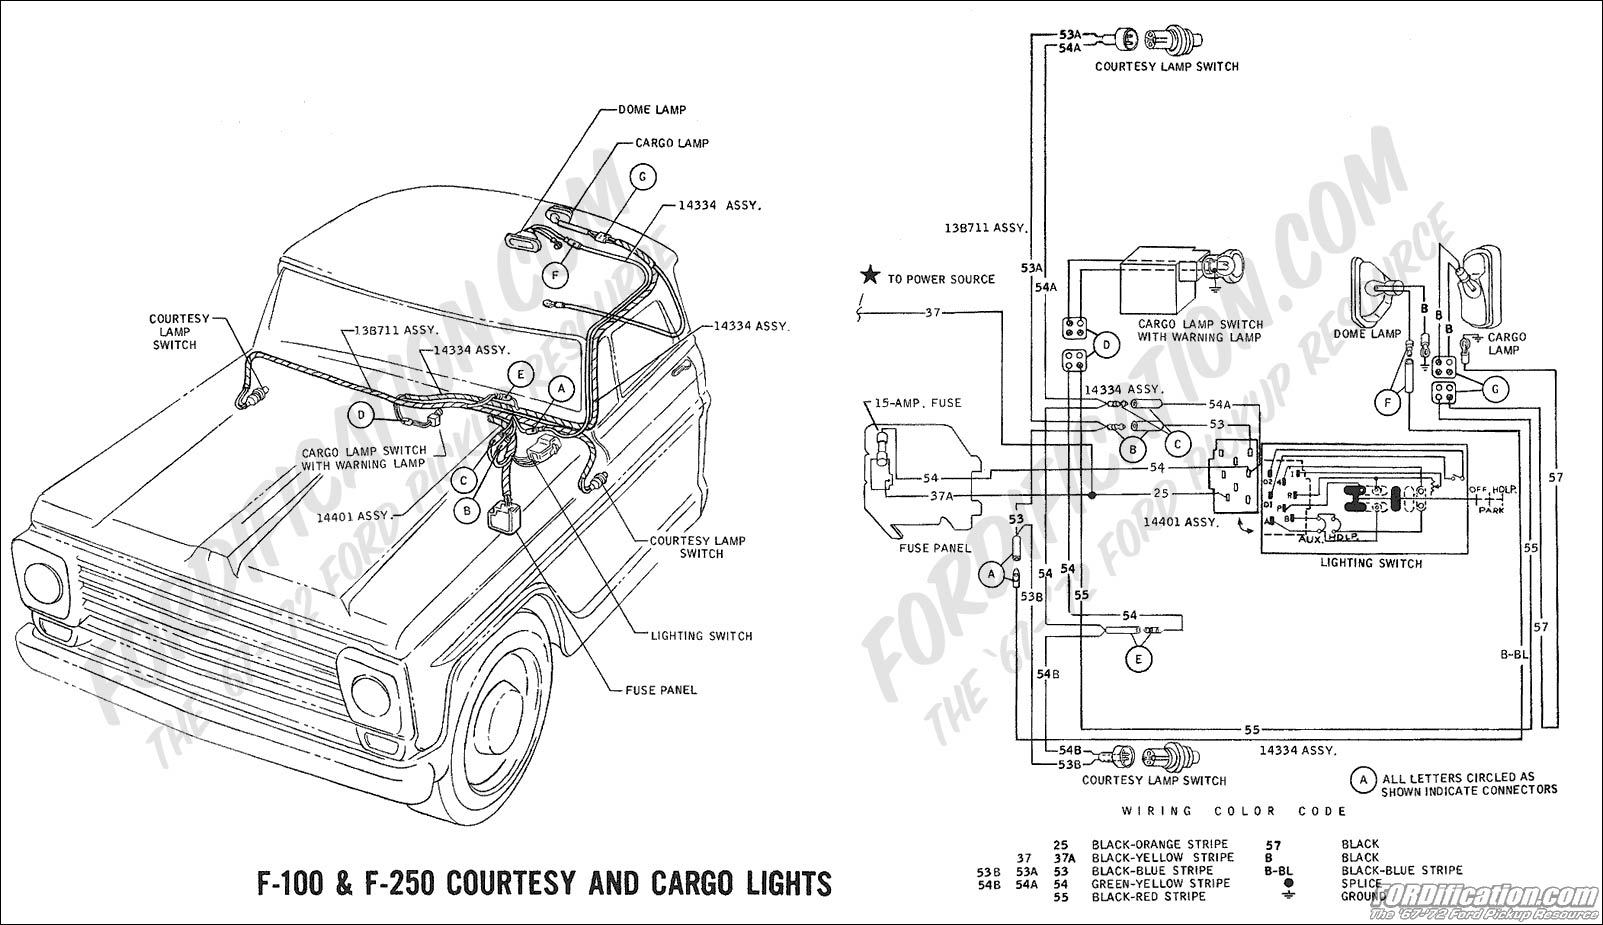 Showthread in addition The  plete Guide To Ford Dashboard Warning Lights moreover Watch besides Diagram furthermore Hvac Actuator Recalibration Procedure. on chevy turn signal diagram